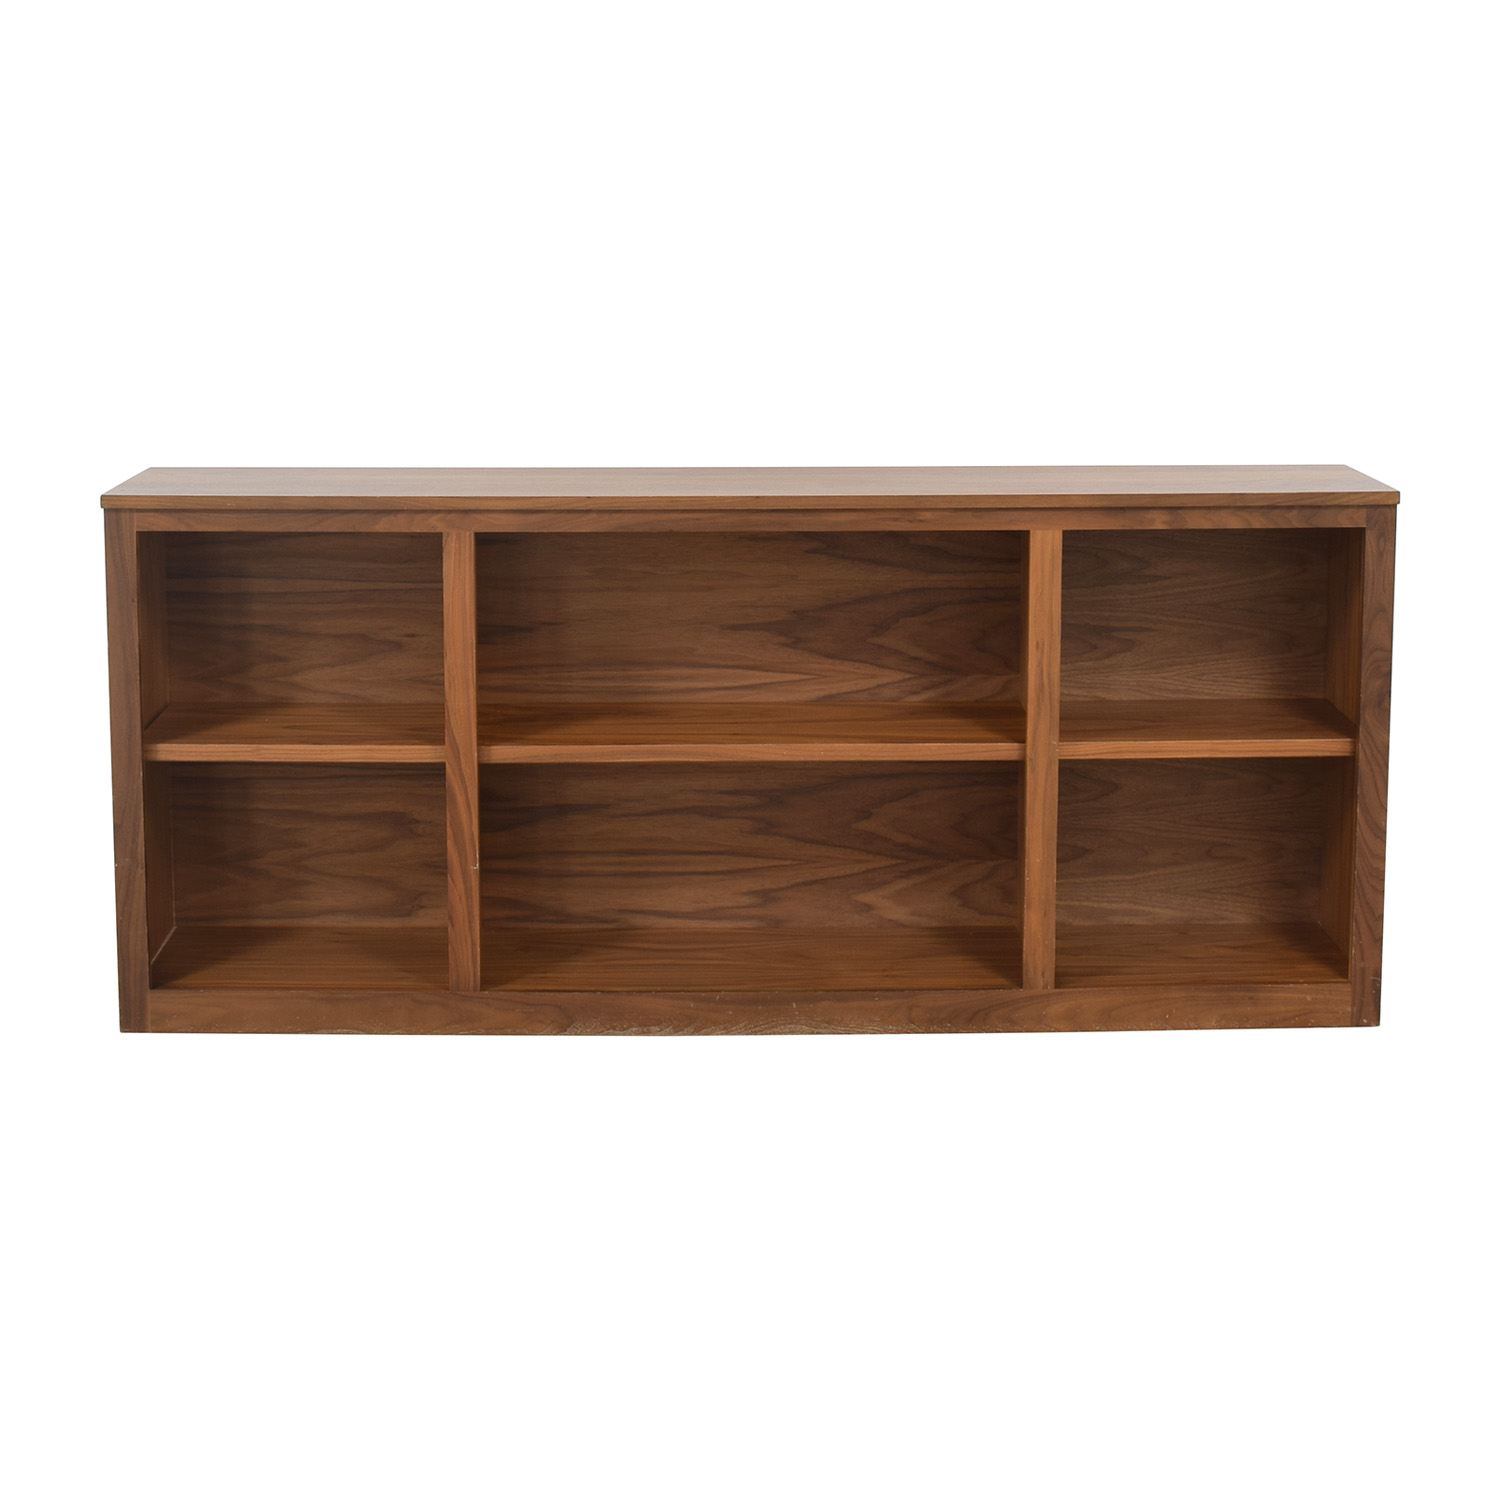 Room & Board Woodwind Modern Bookcase / Bookcases & Shelving